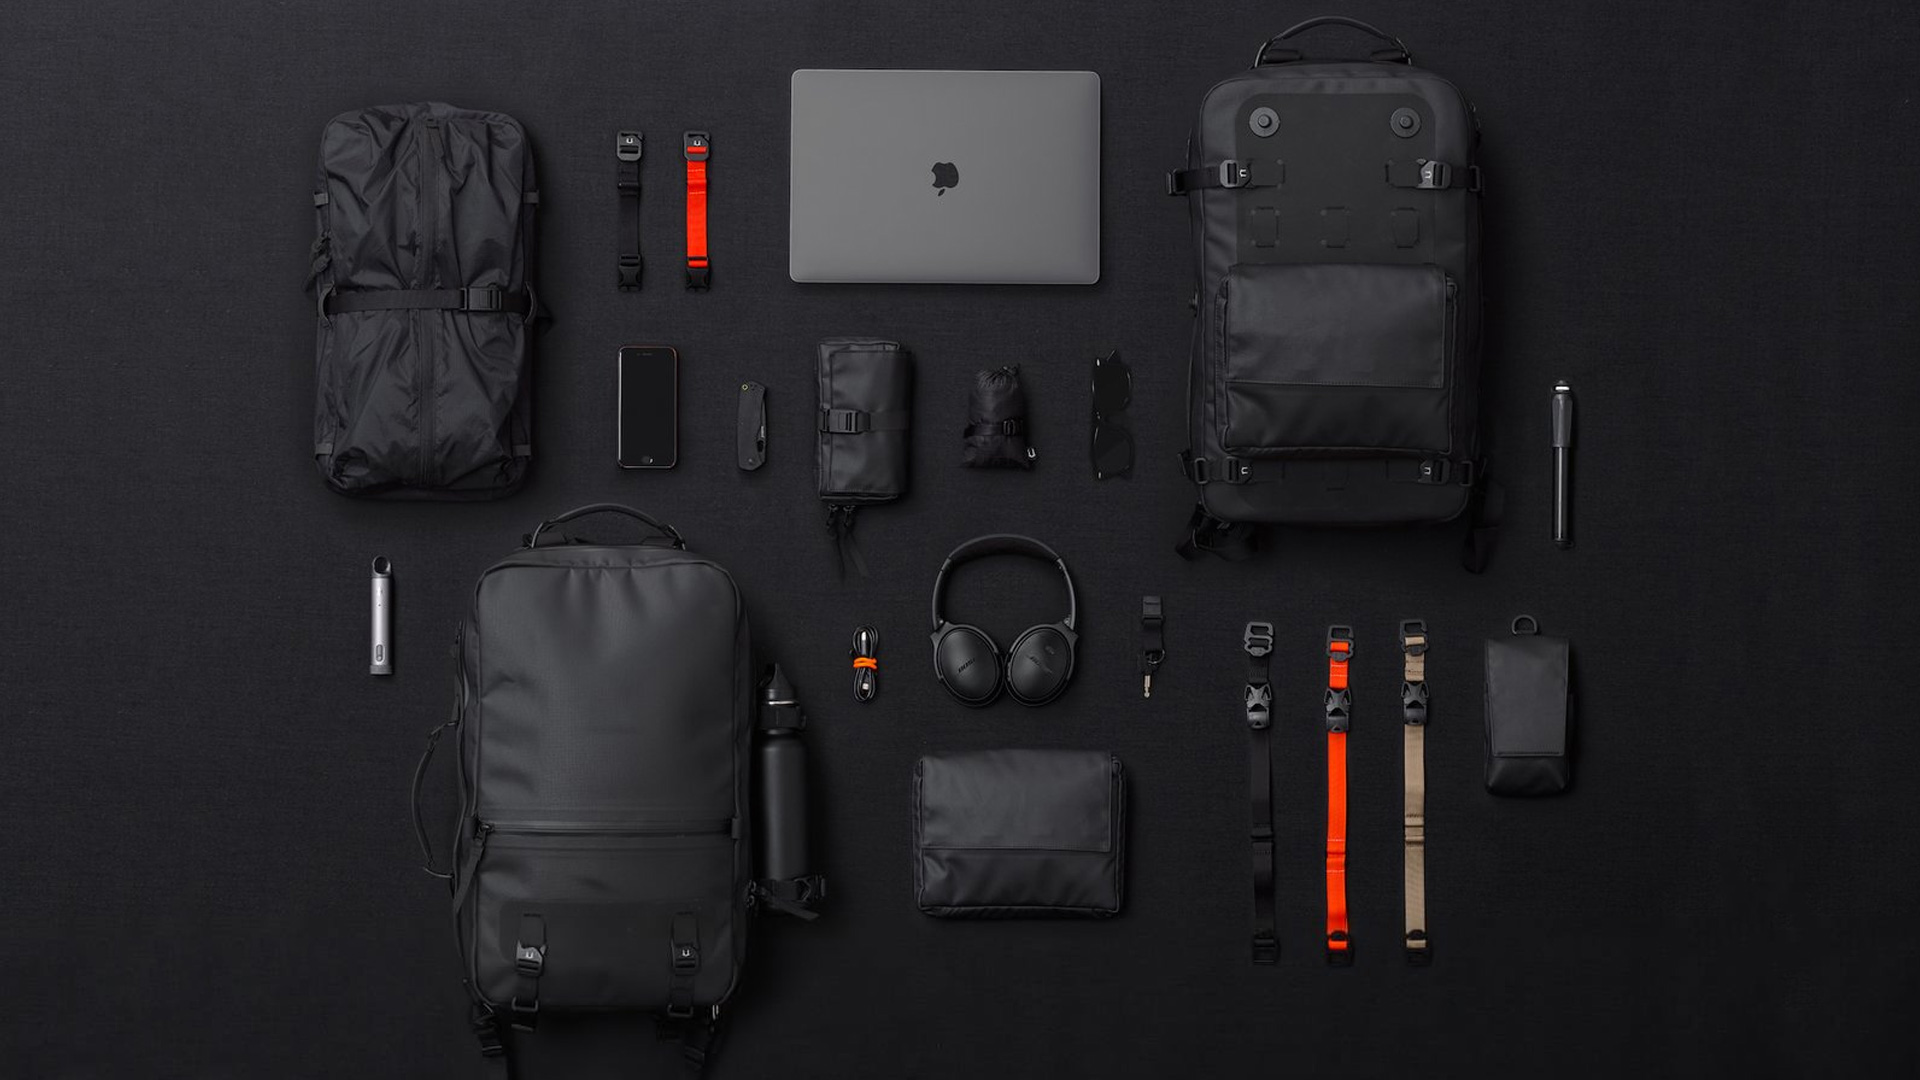 Black Ember launches the Citadel Collection, an IPX6 rated modular backpack